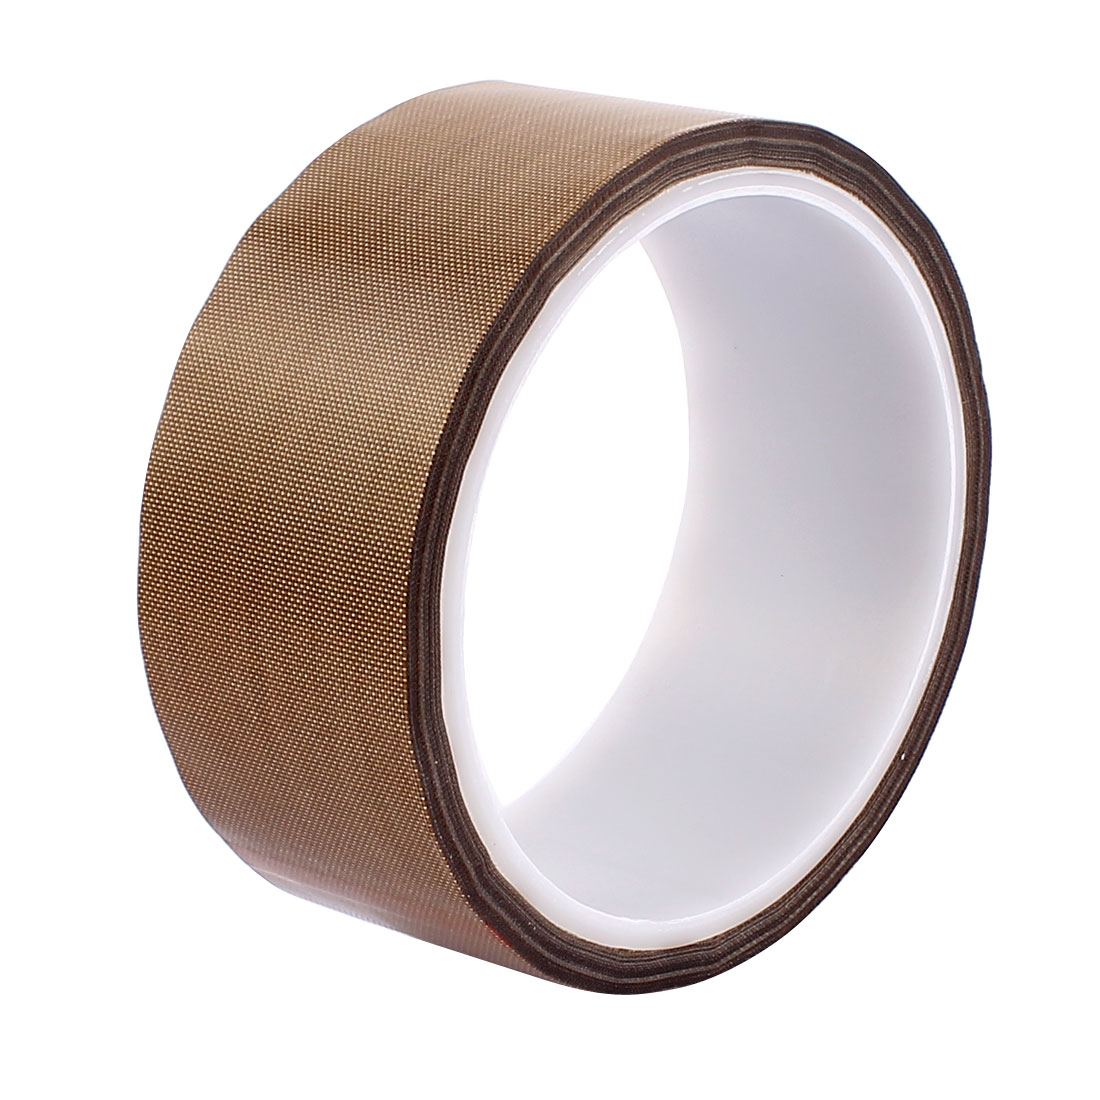 38mm Width 10M Long 0.13mm Thickness Nonstick High Temperature PTFE Adhesive Tape